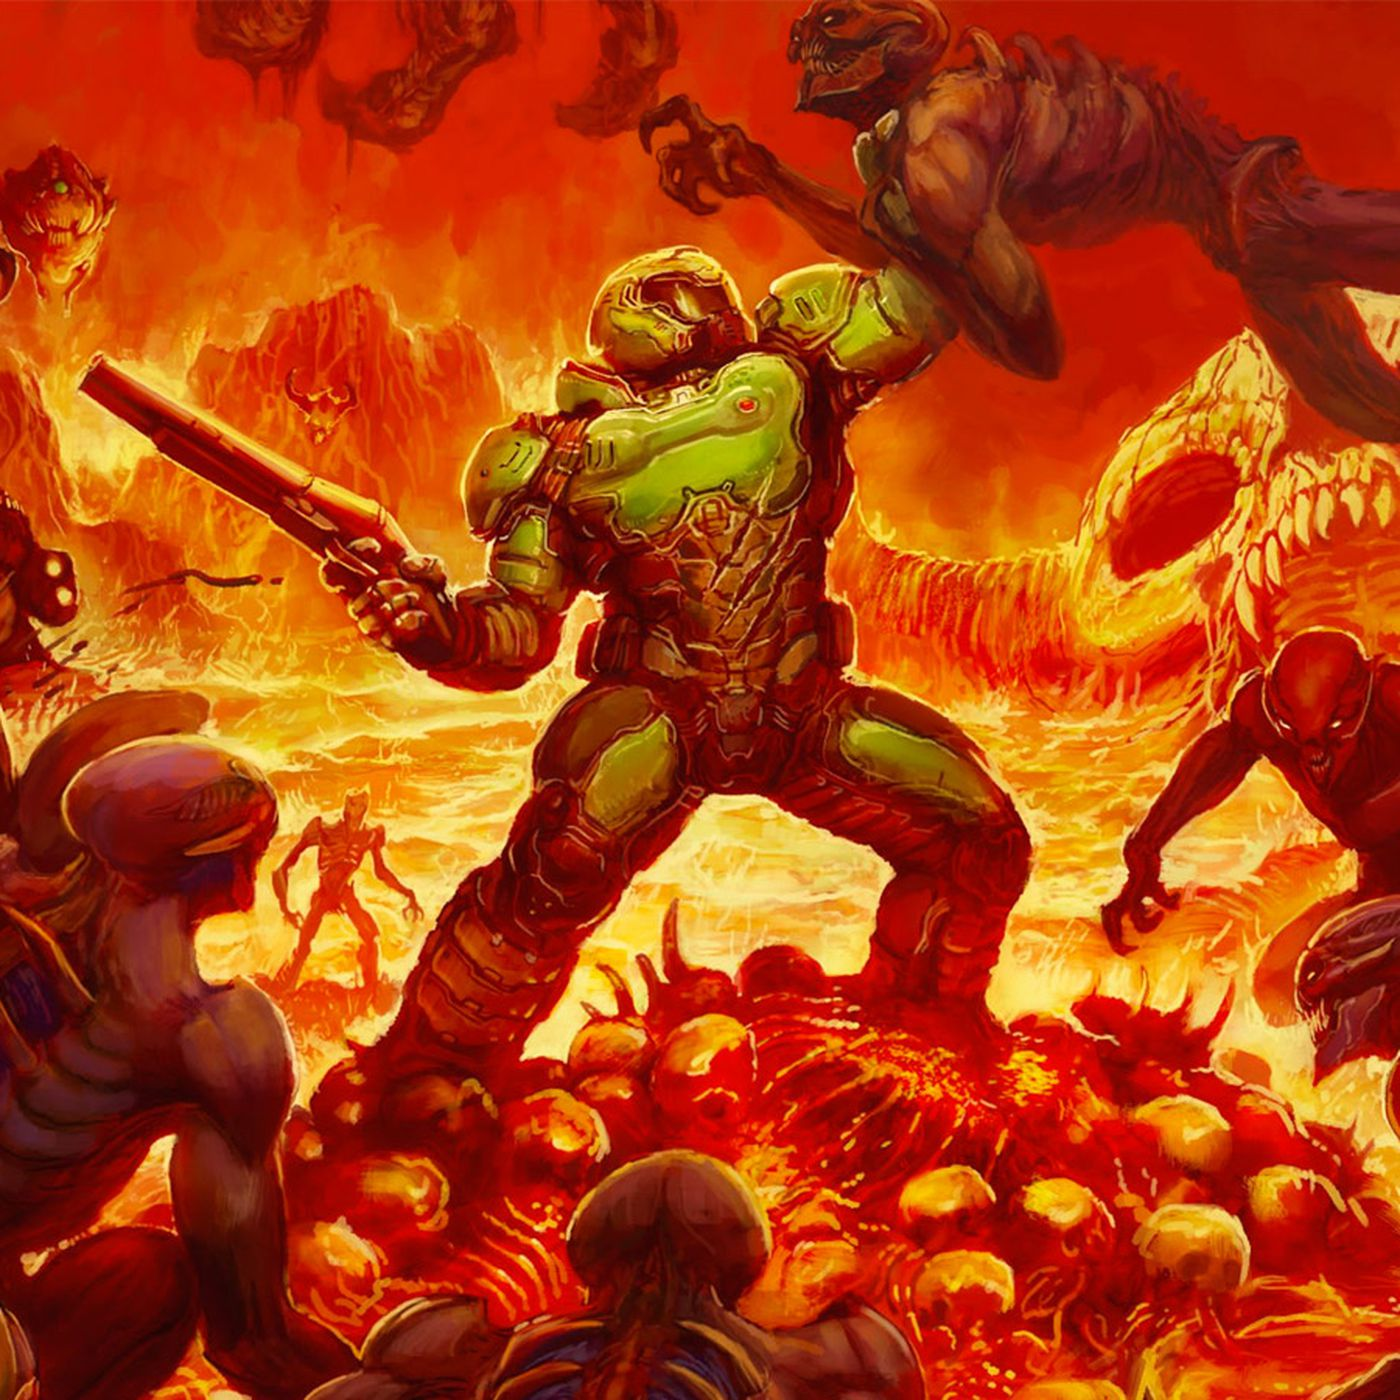 Report: id taking control of Doom multiplayer back from contractor - Polygon